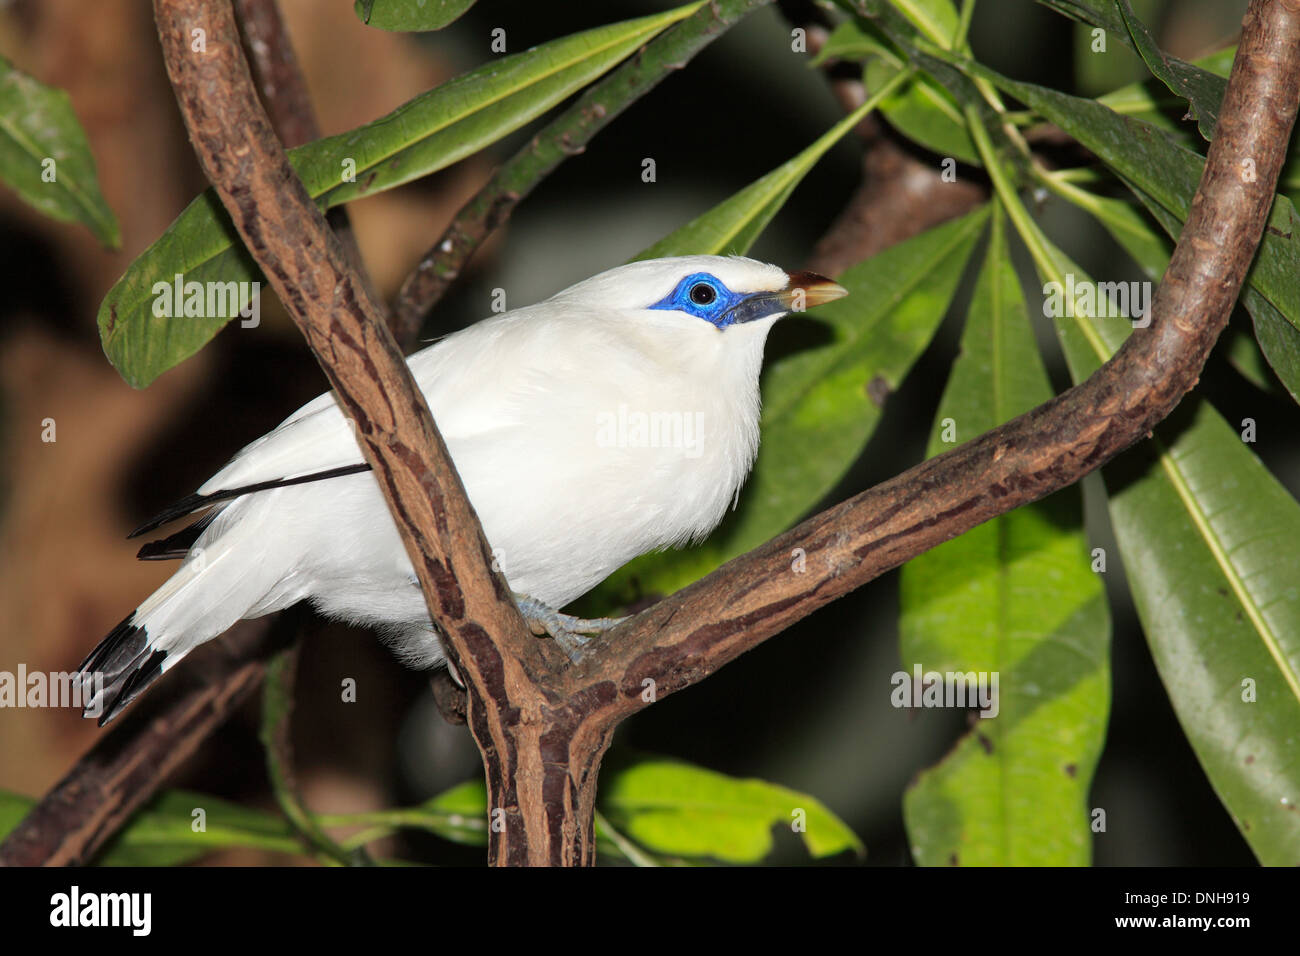 Page 2 Burung High Resolution Stock Photography And Images Alamy